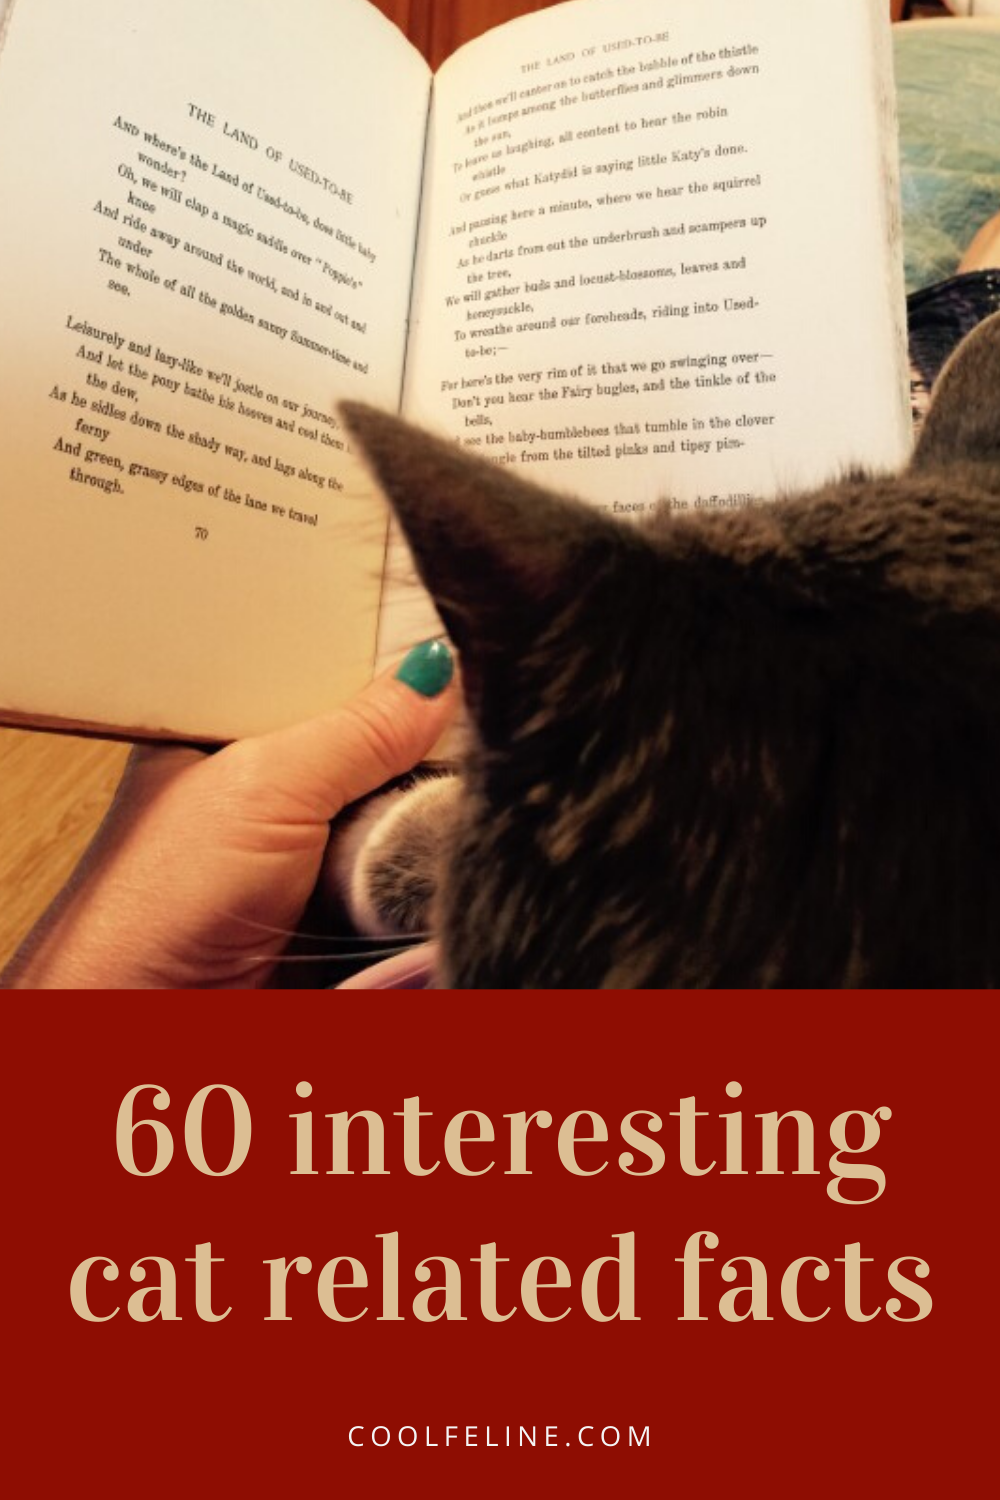 60 Interesting Cat Related Facts In 2020 Cat Facts Cats Cat Love Quotes